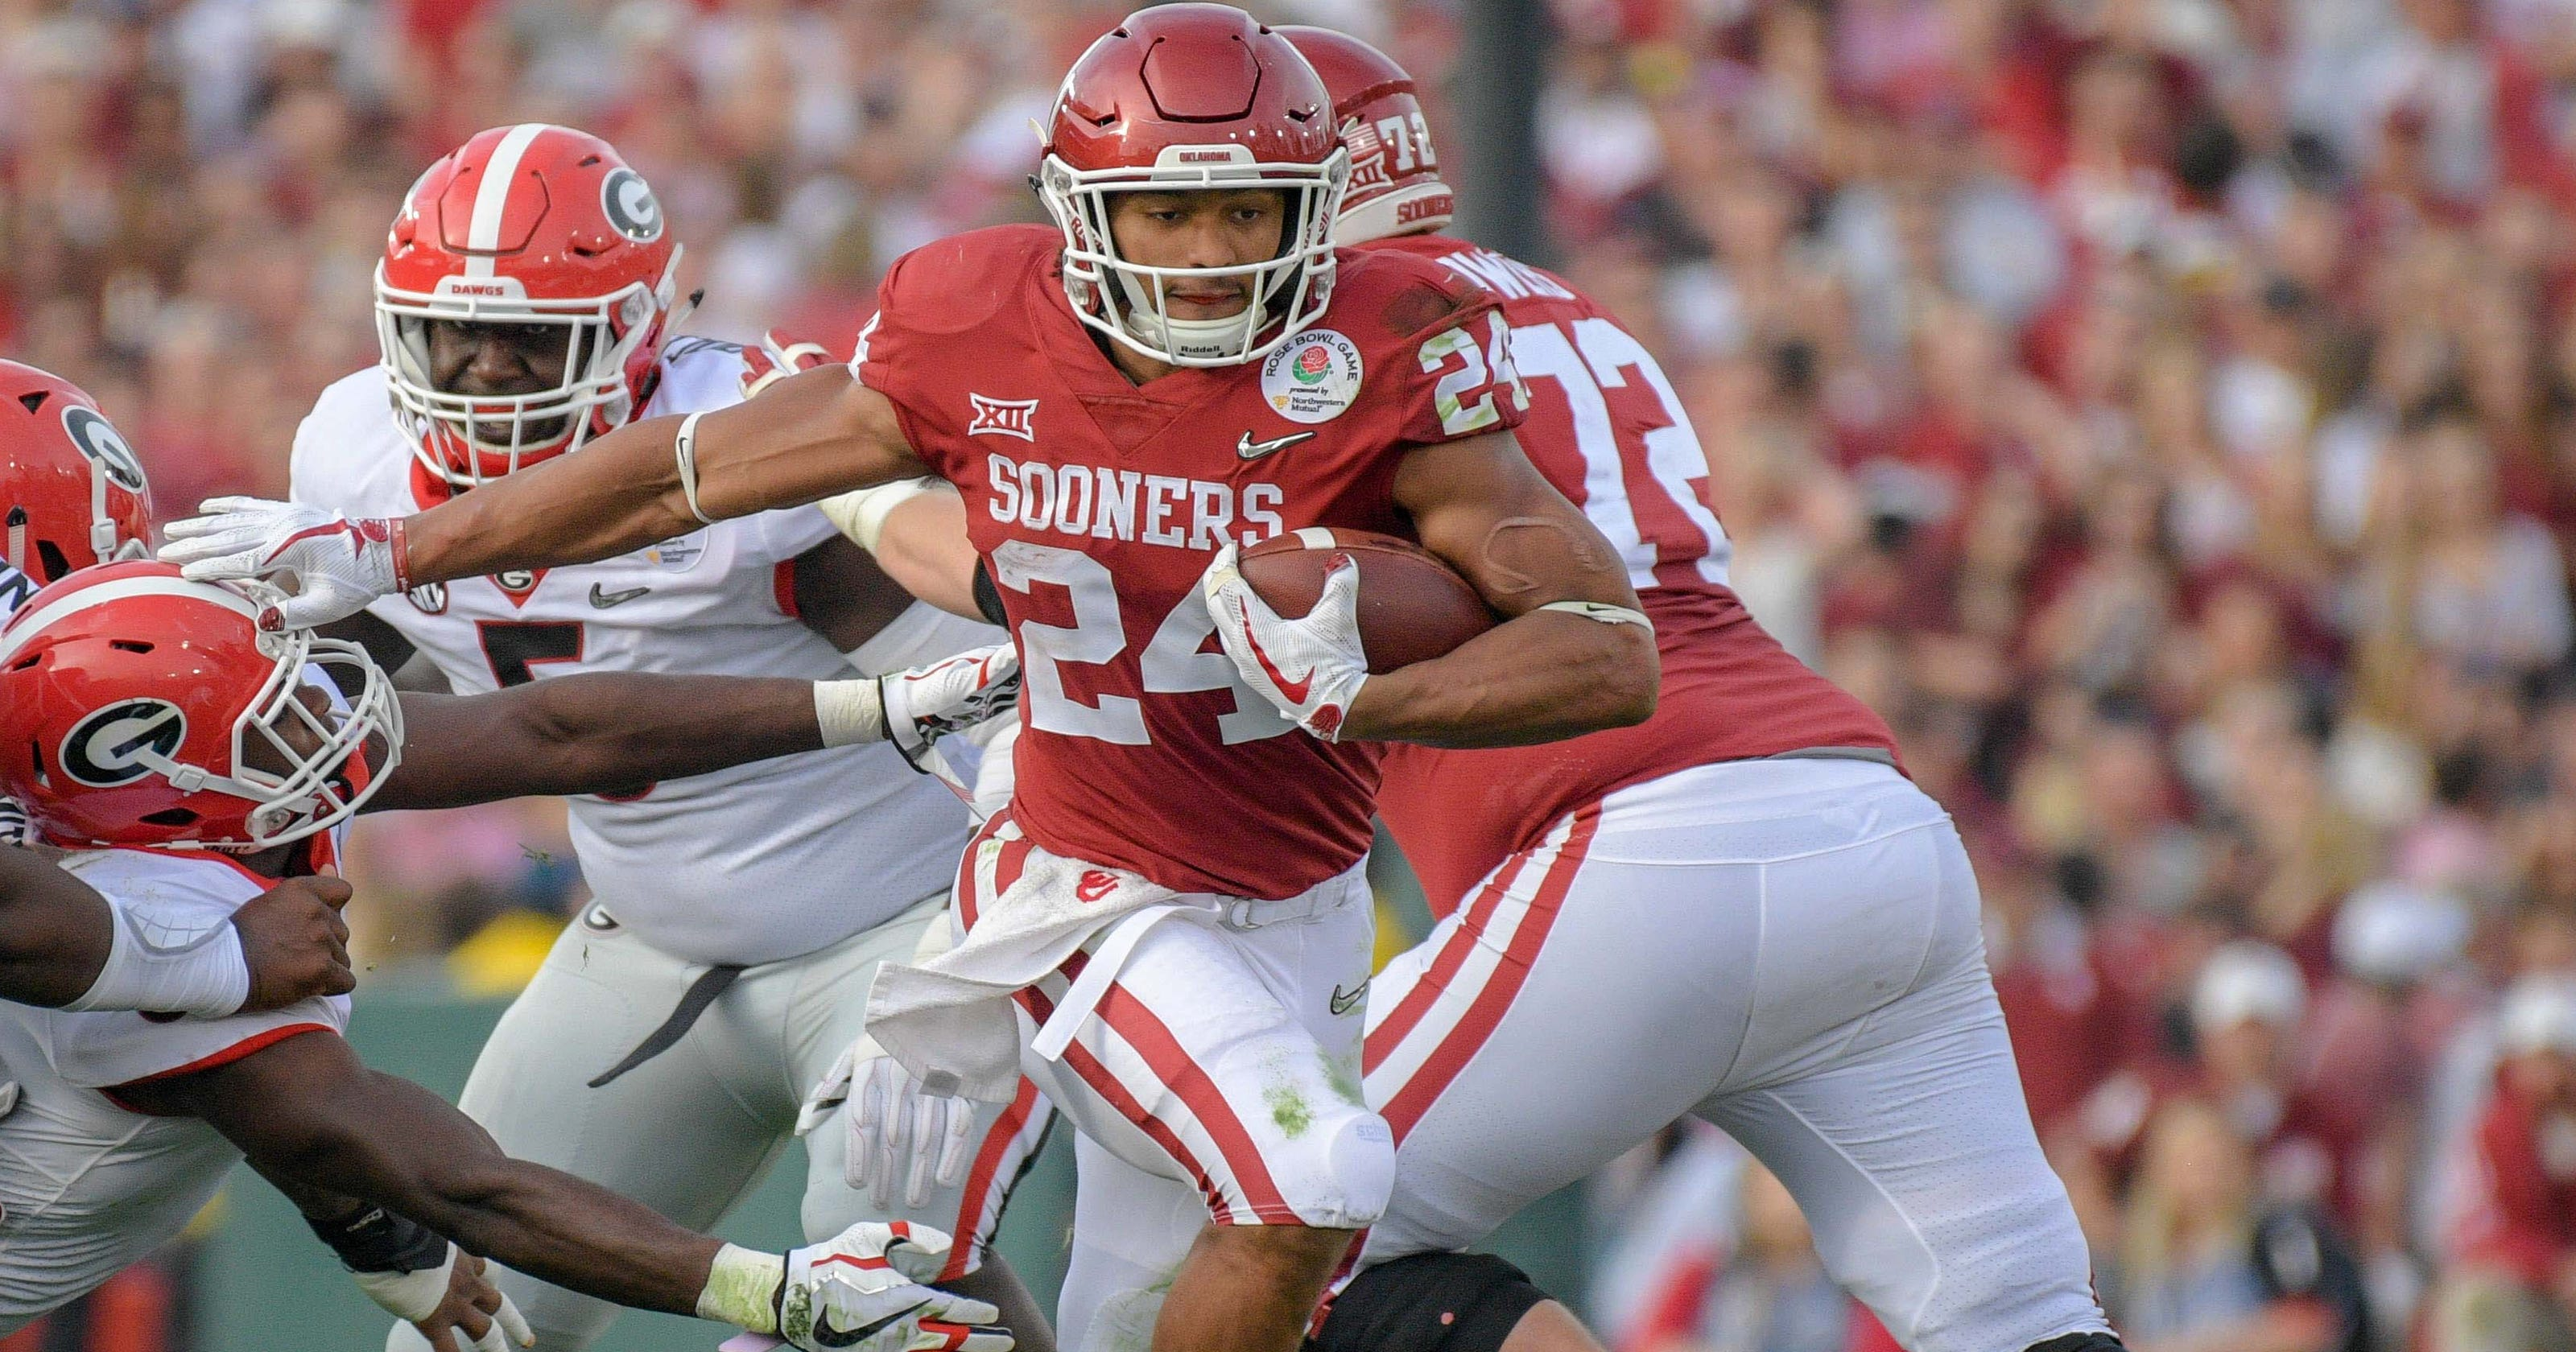 College football television schedule for the 2018-19 season